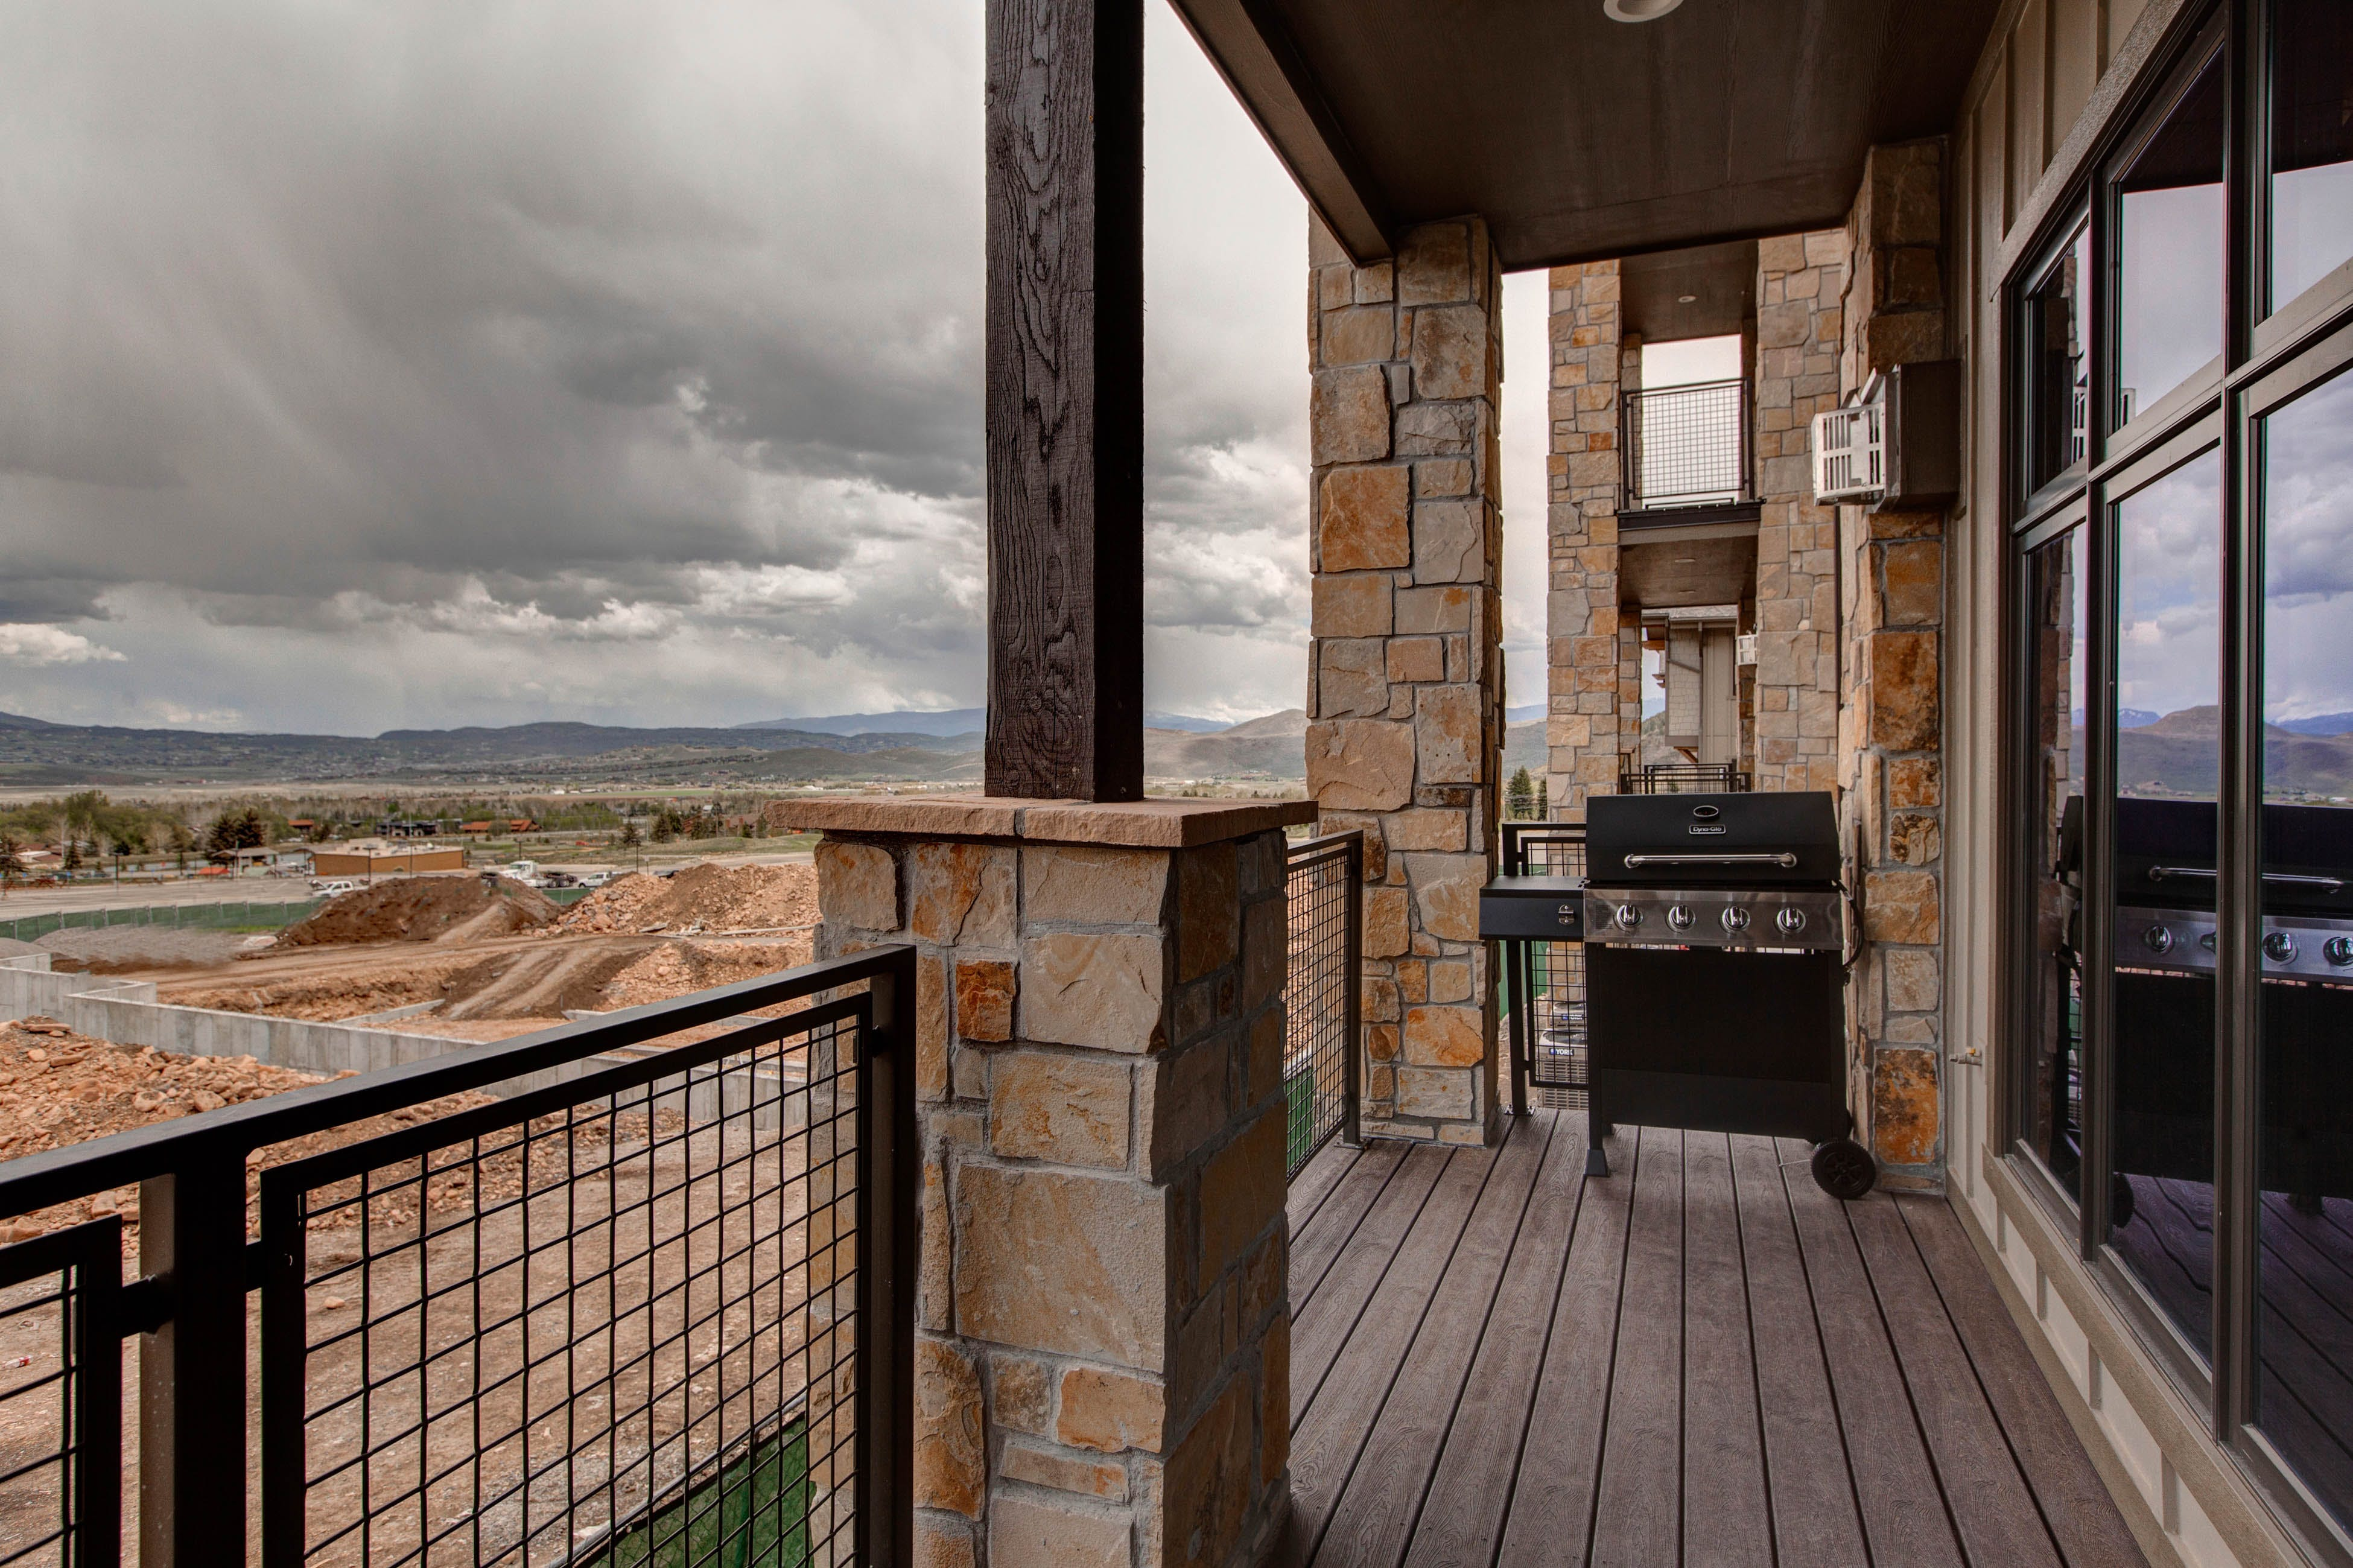 Outdoor grill and amazing views of Park City, Utah